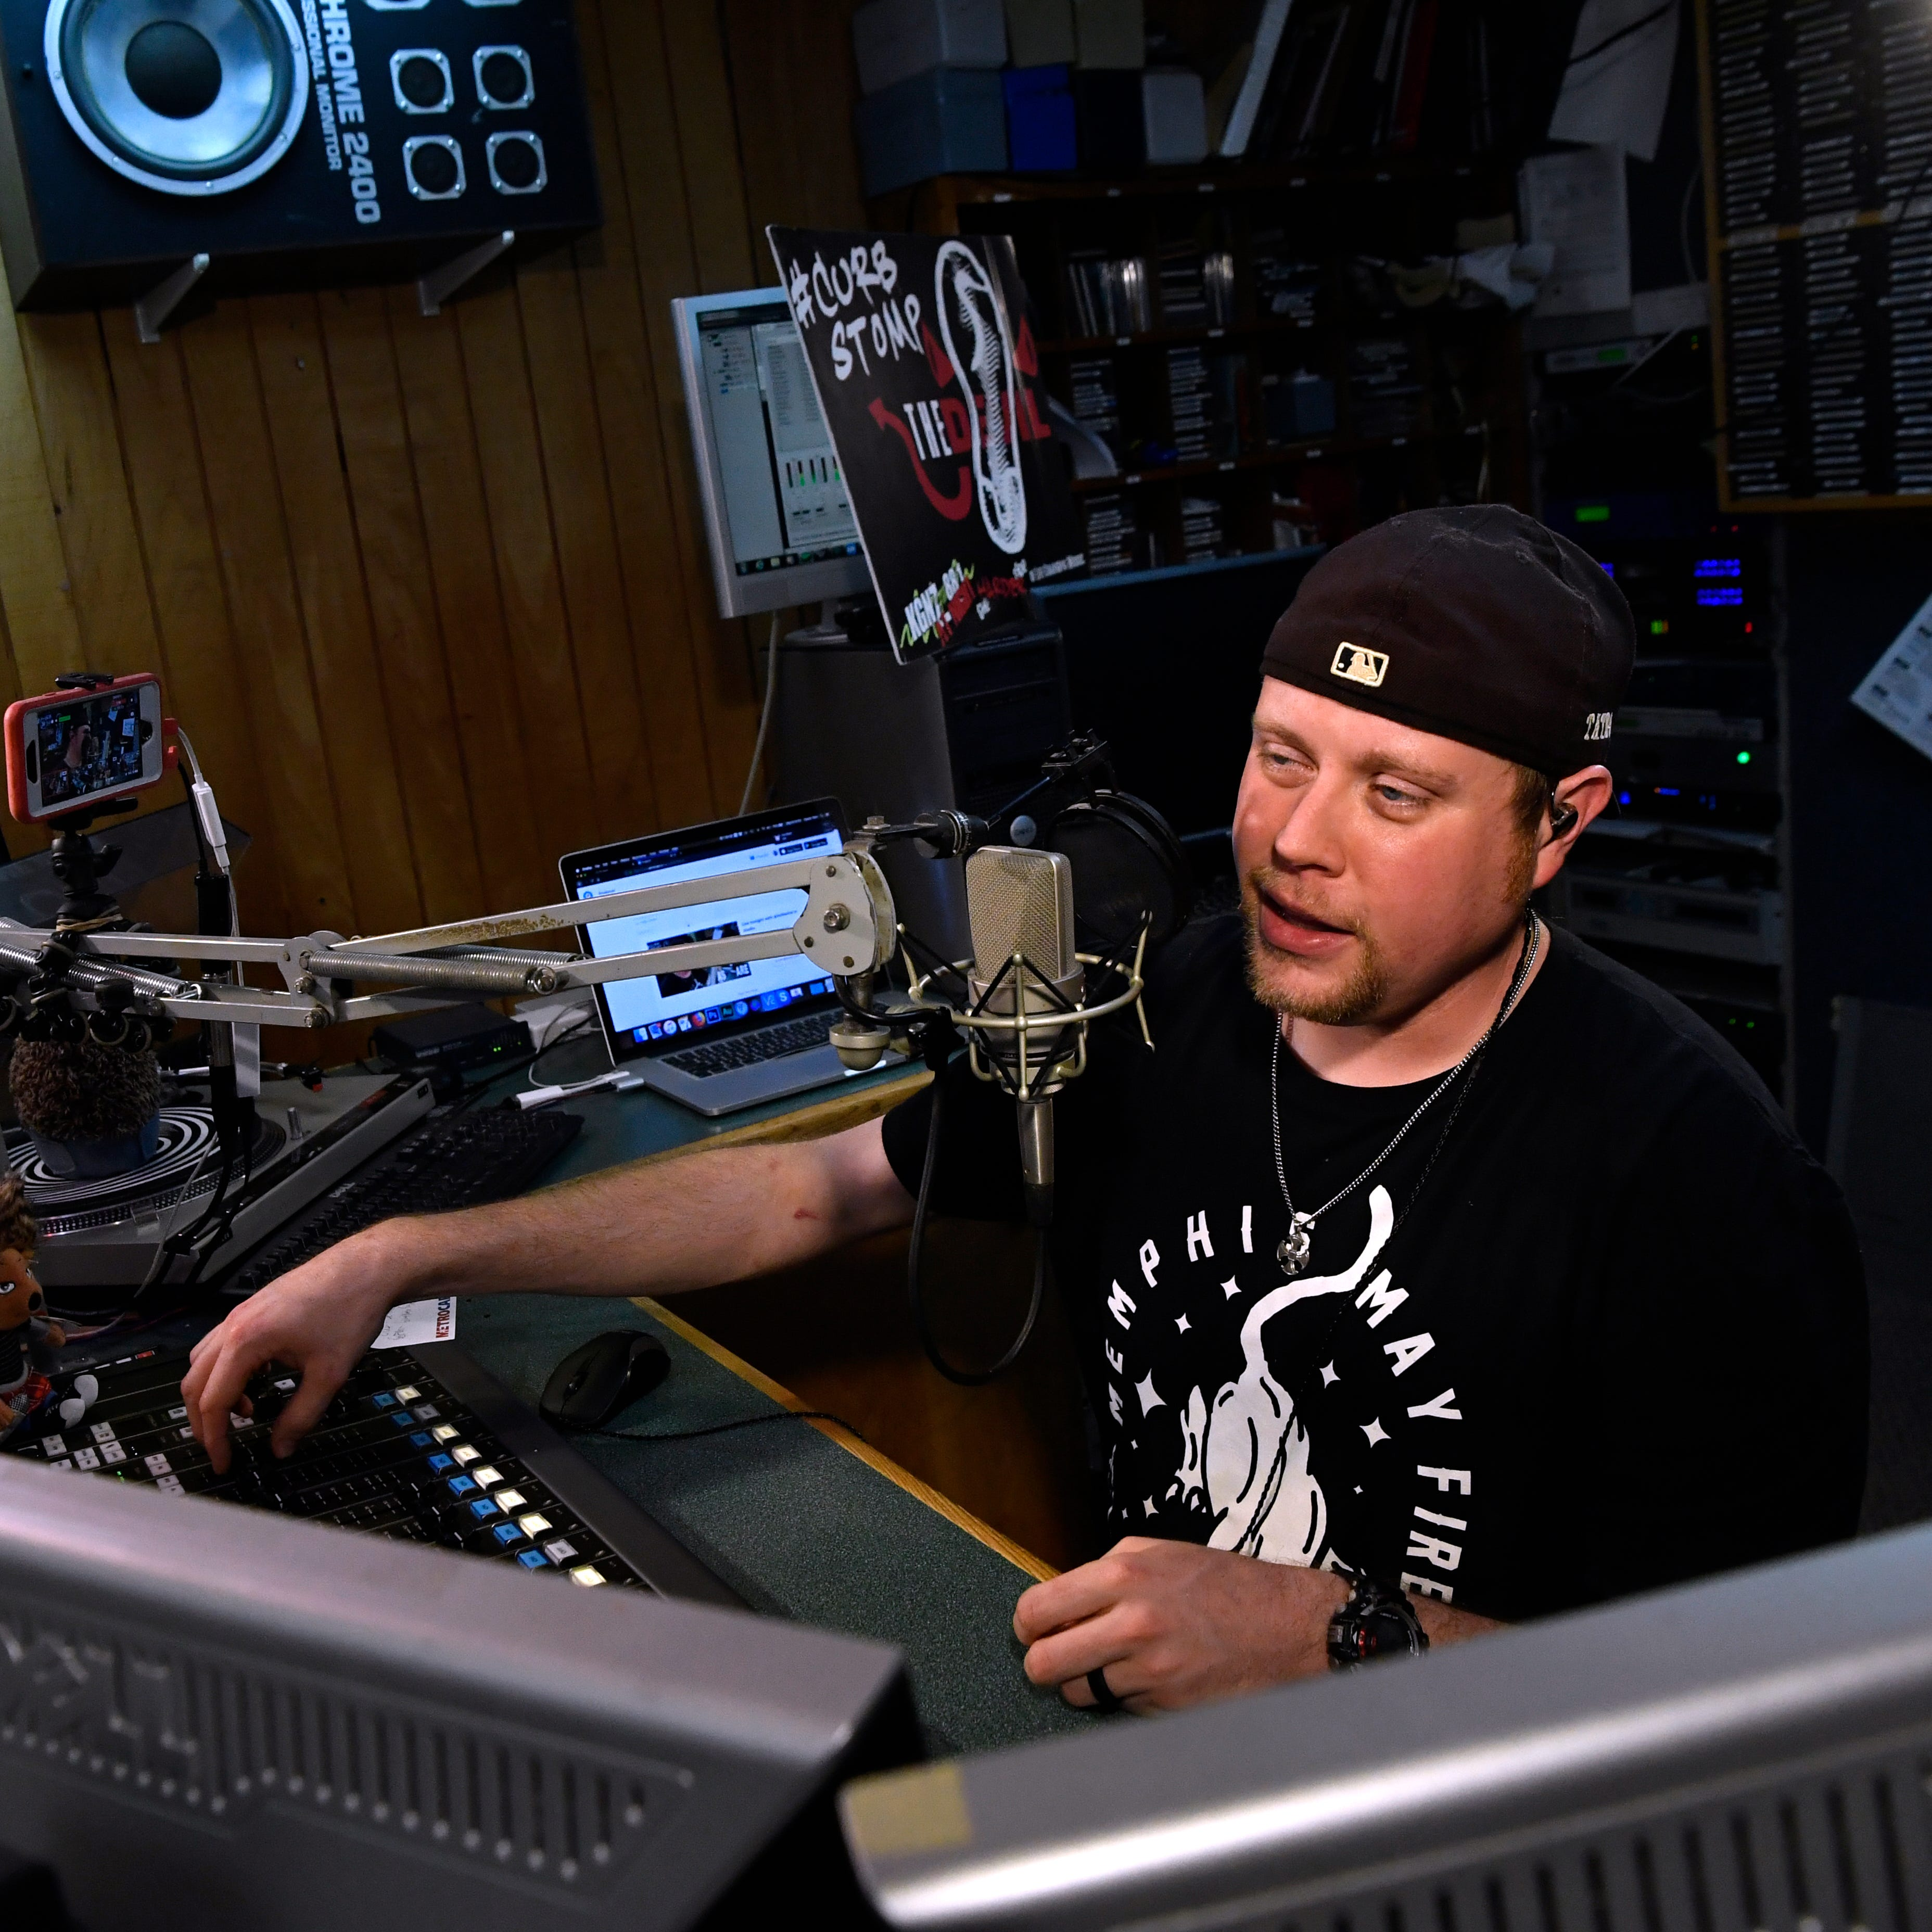 'This my church': Abilene man's ministry includes radio DJ shift